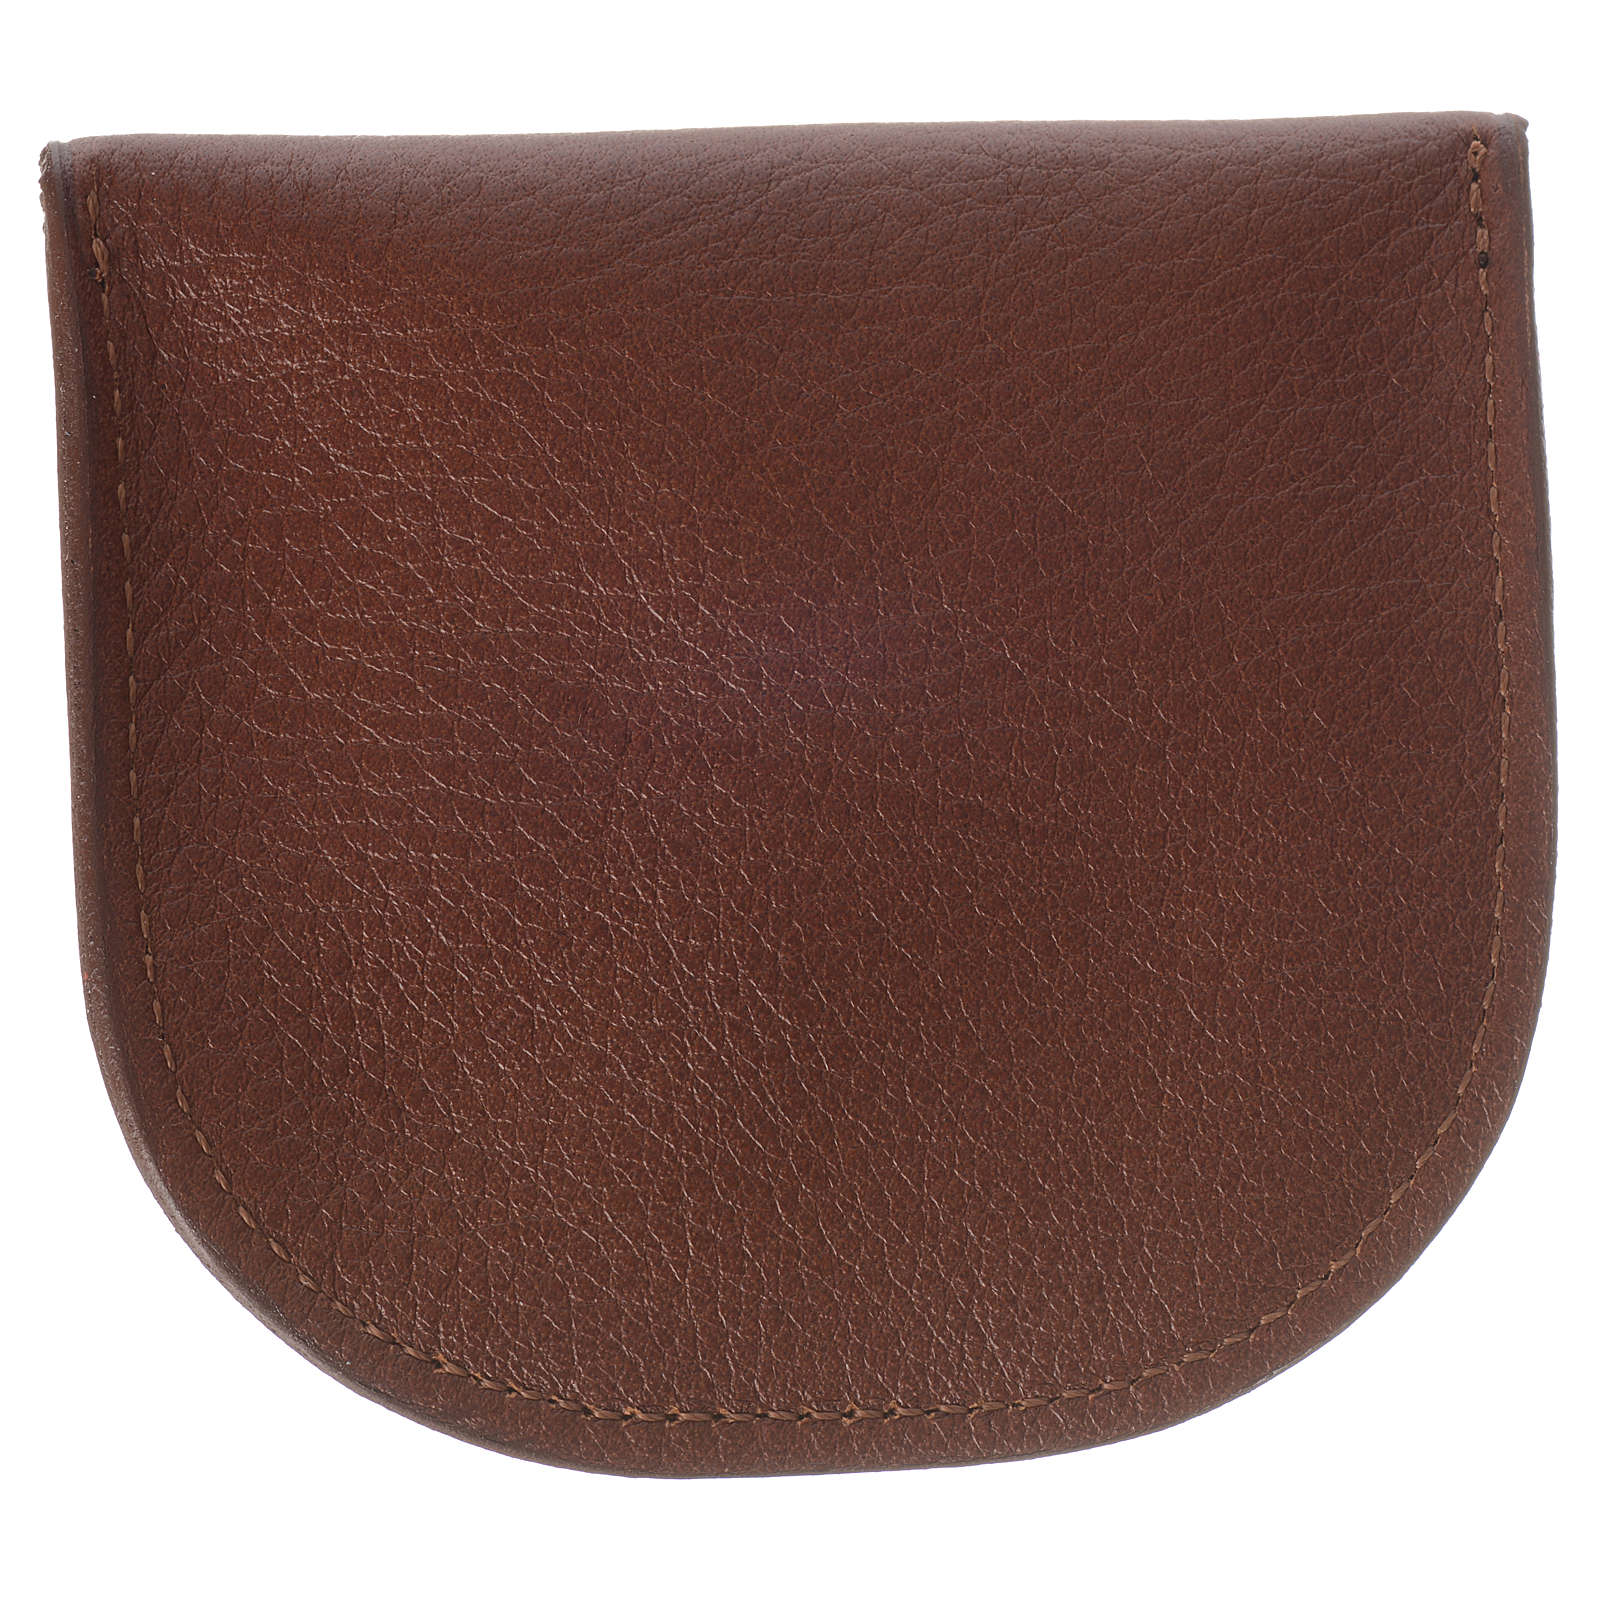 Rosary beads case in brown leather, Monks of Bethlèem 4